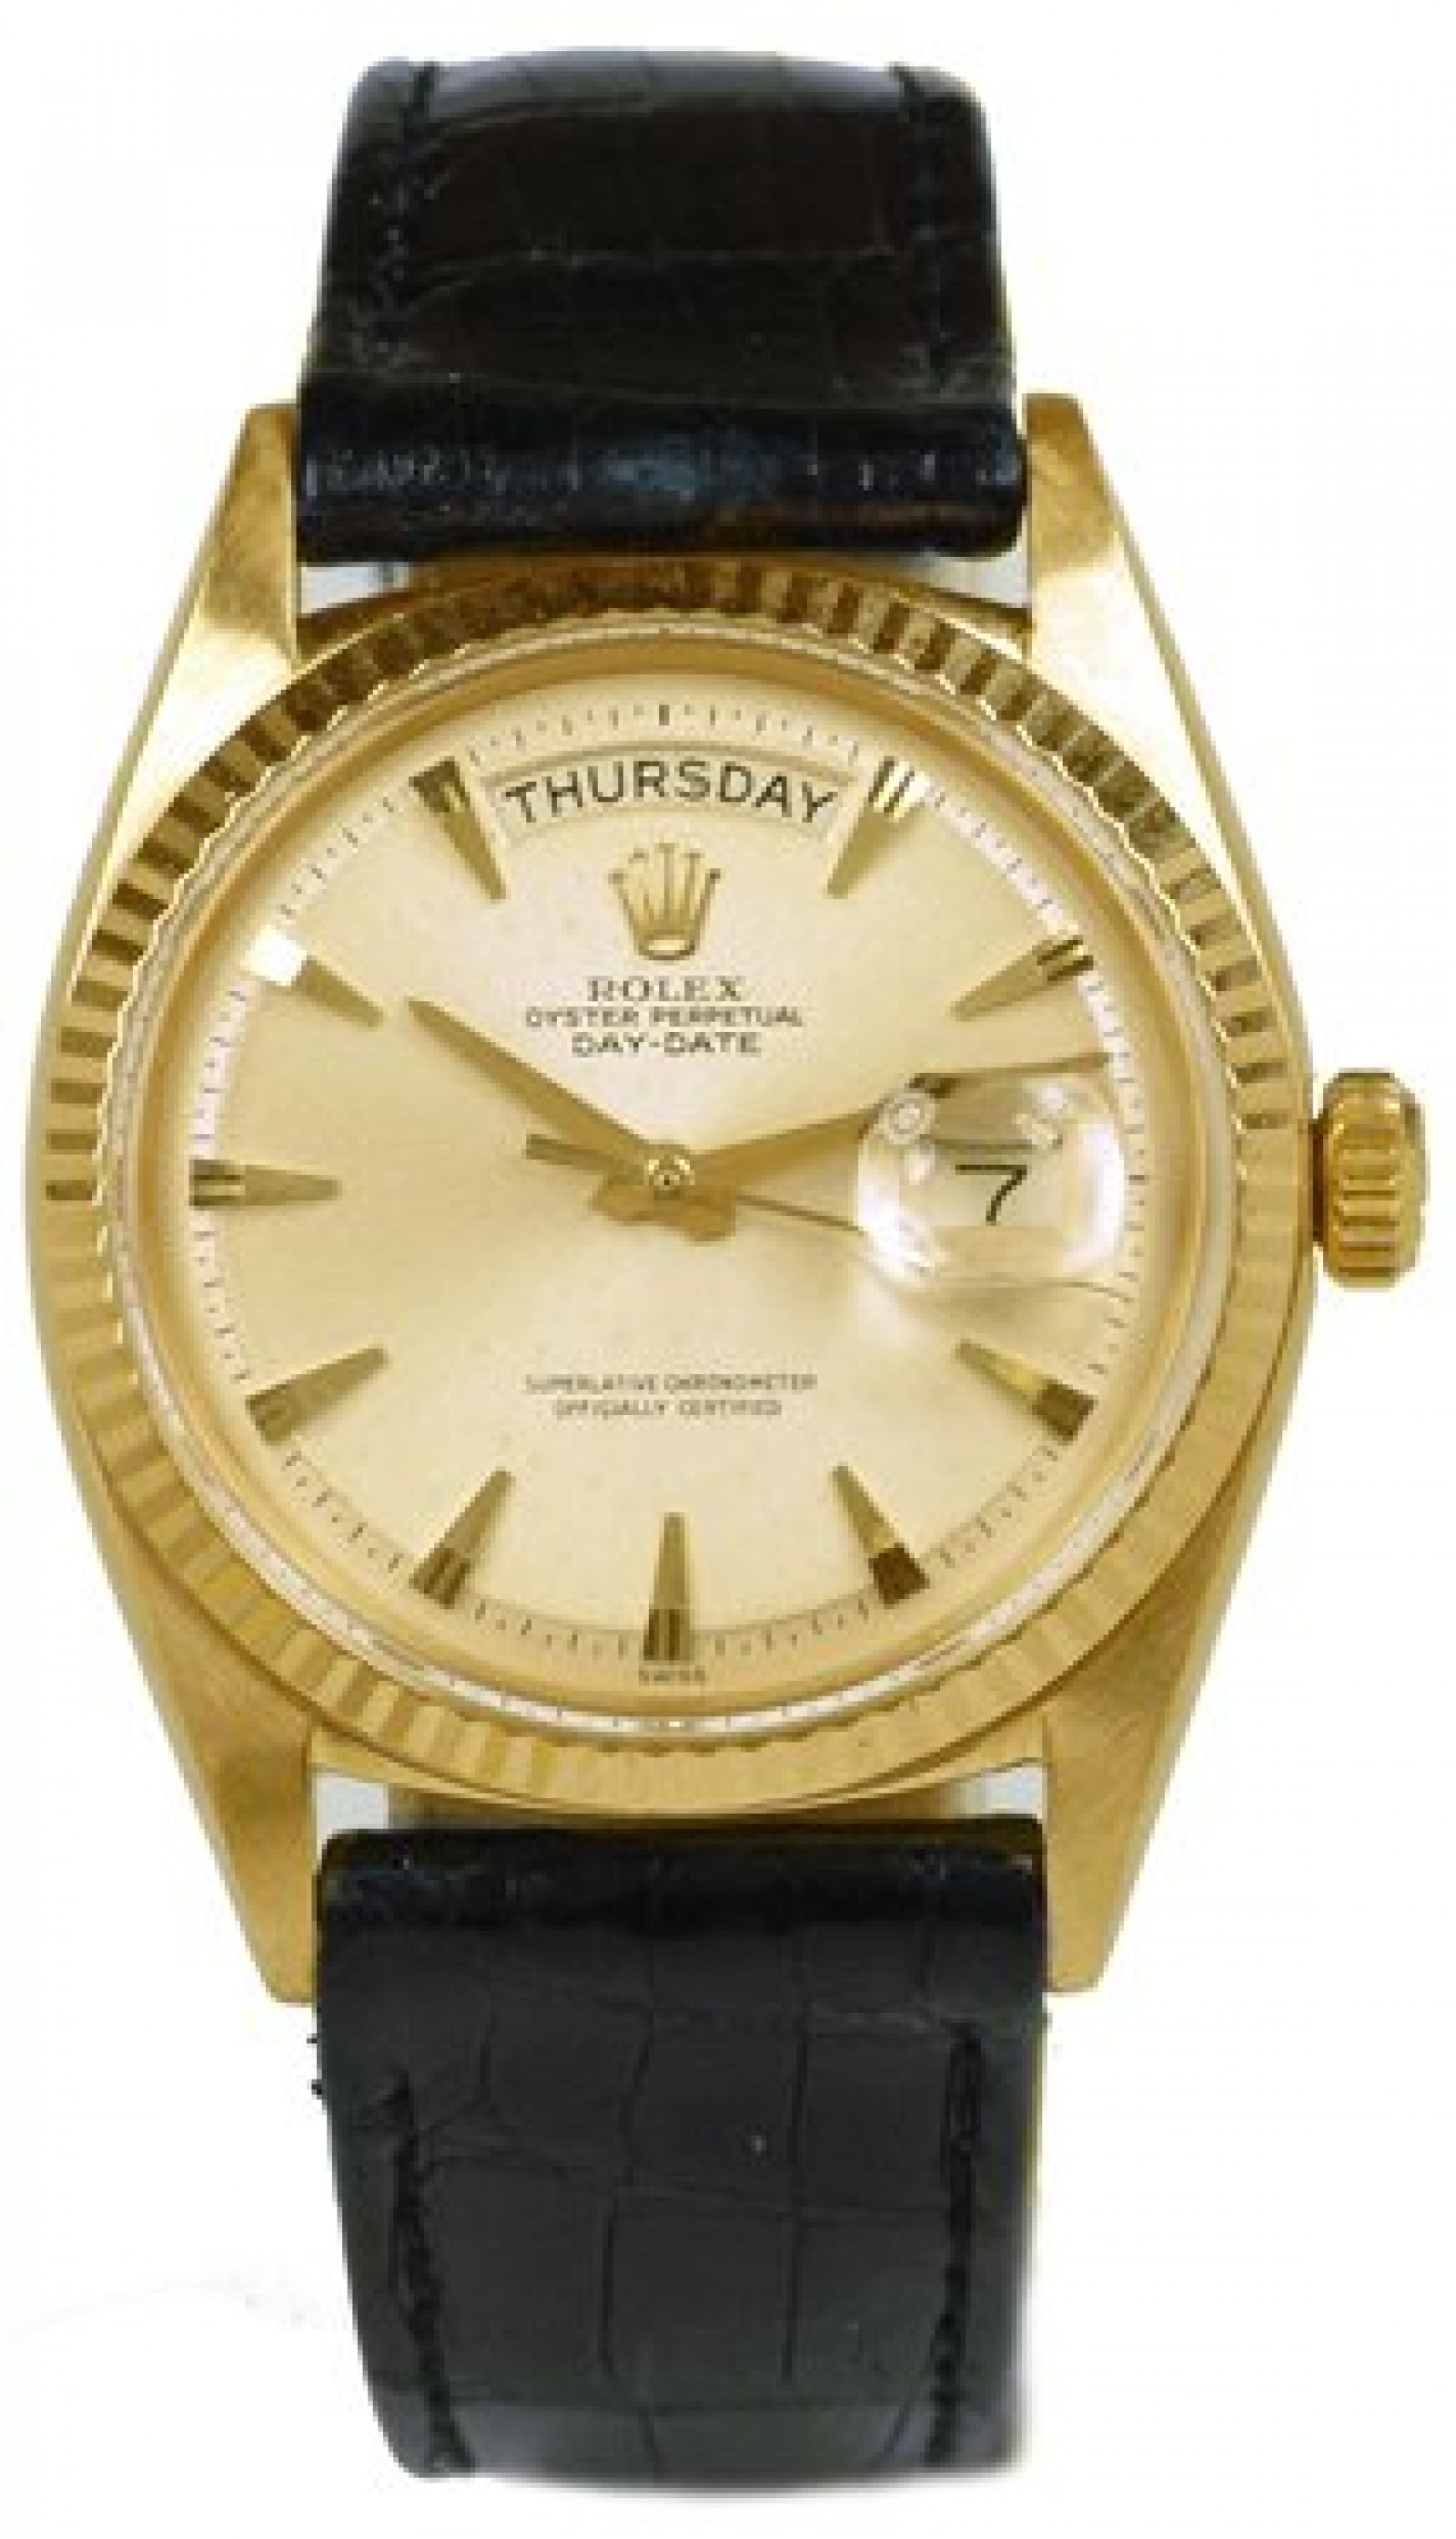 Vintage Rolex Day-Date 1803 Gold Silver with Silver Dial